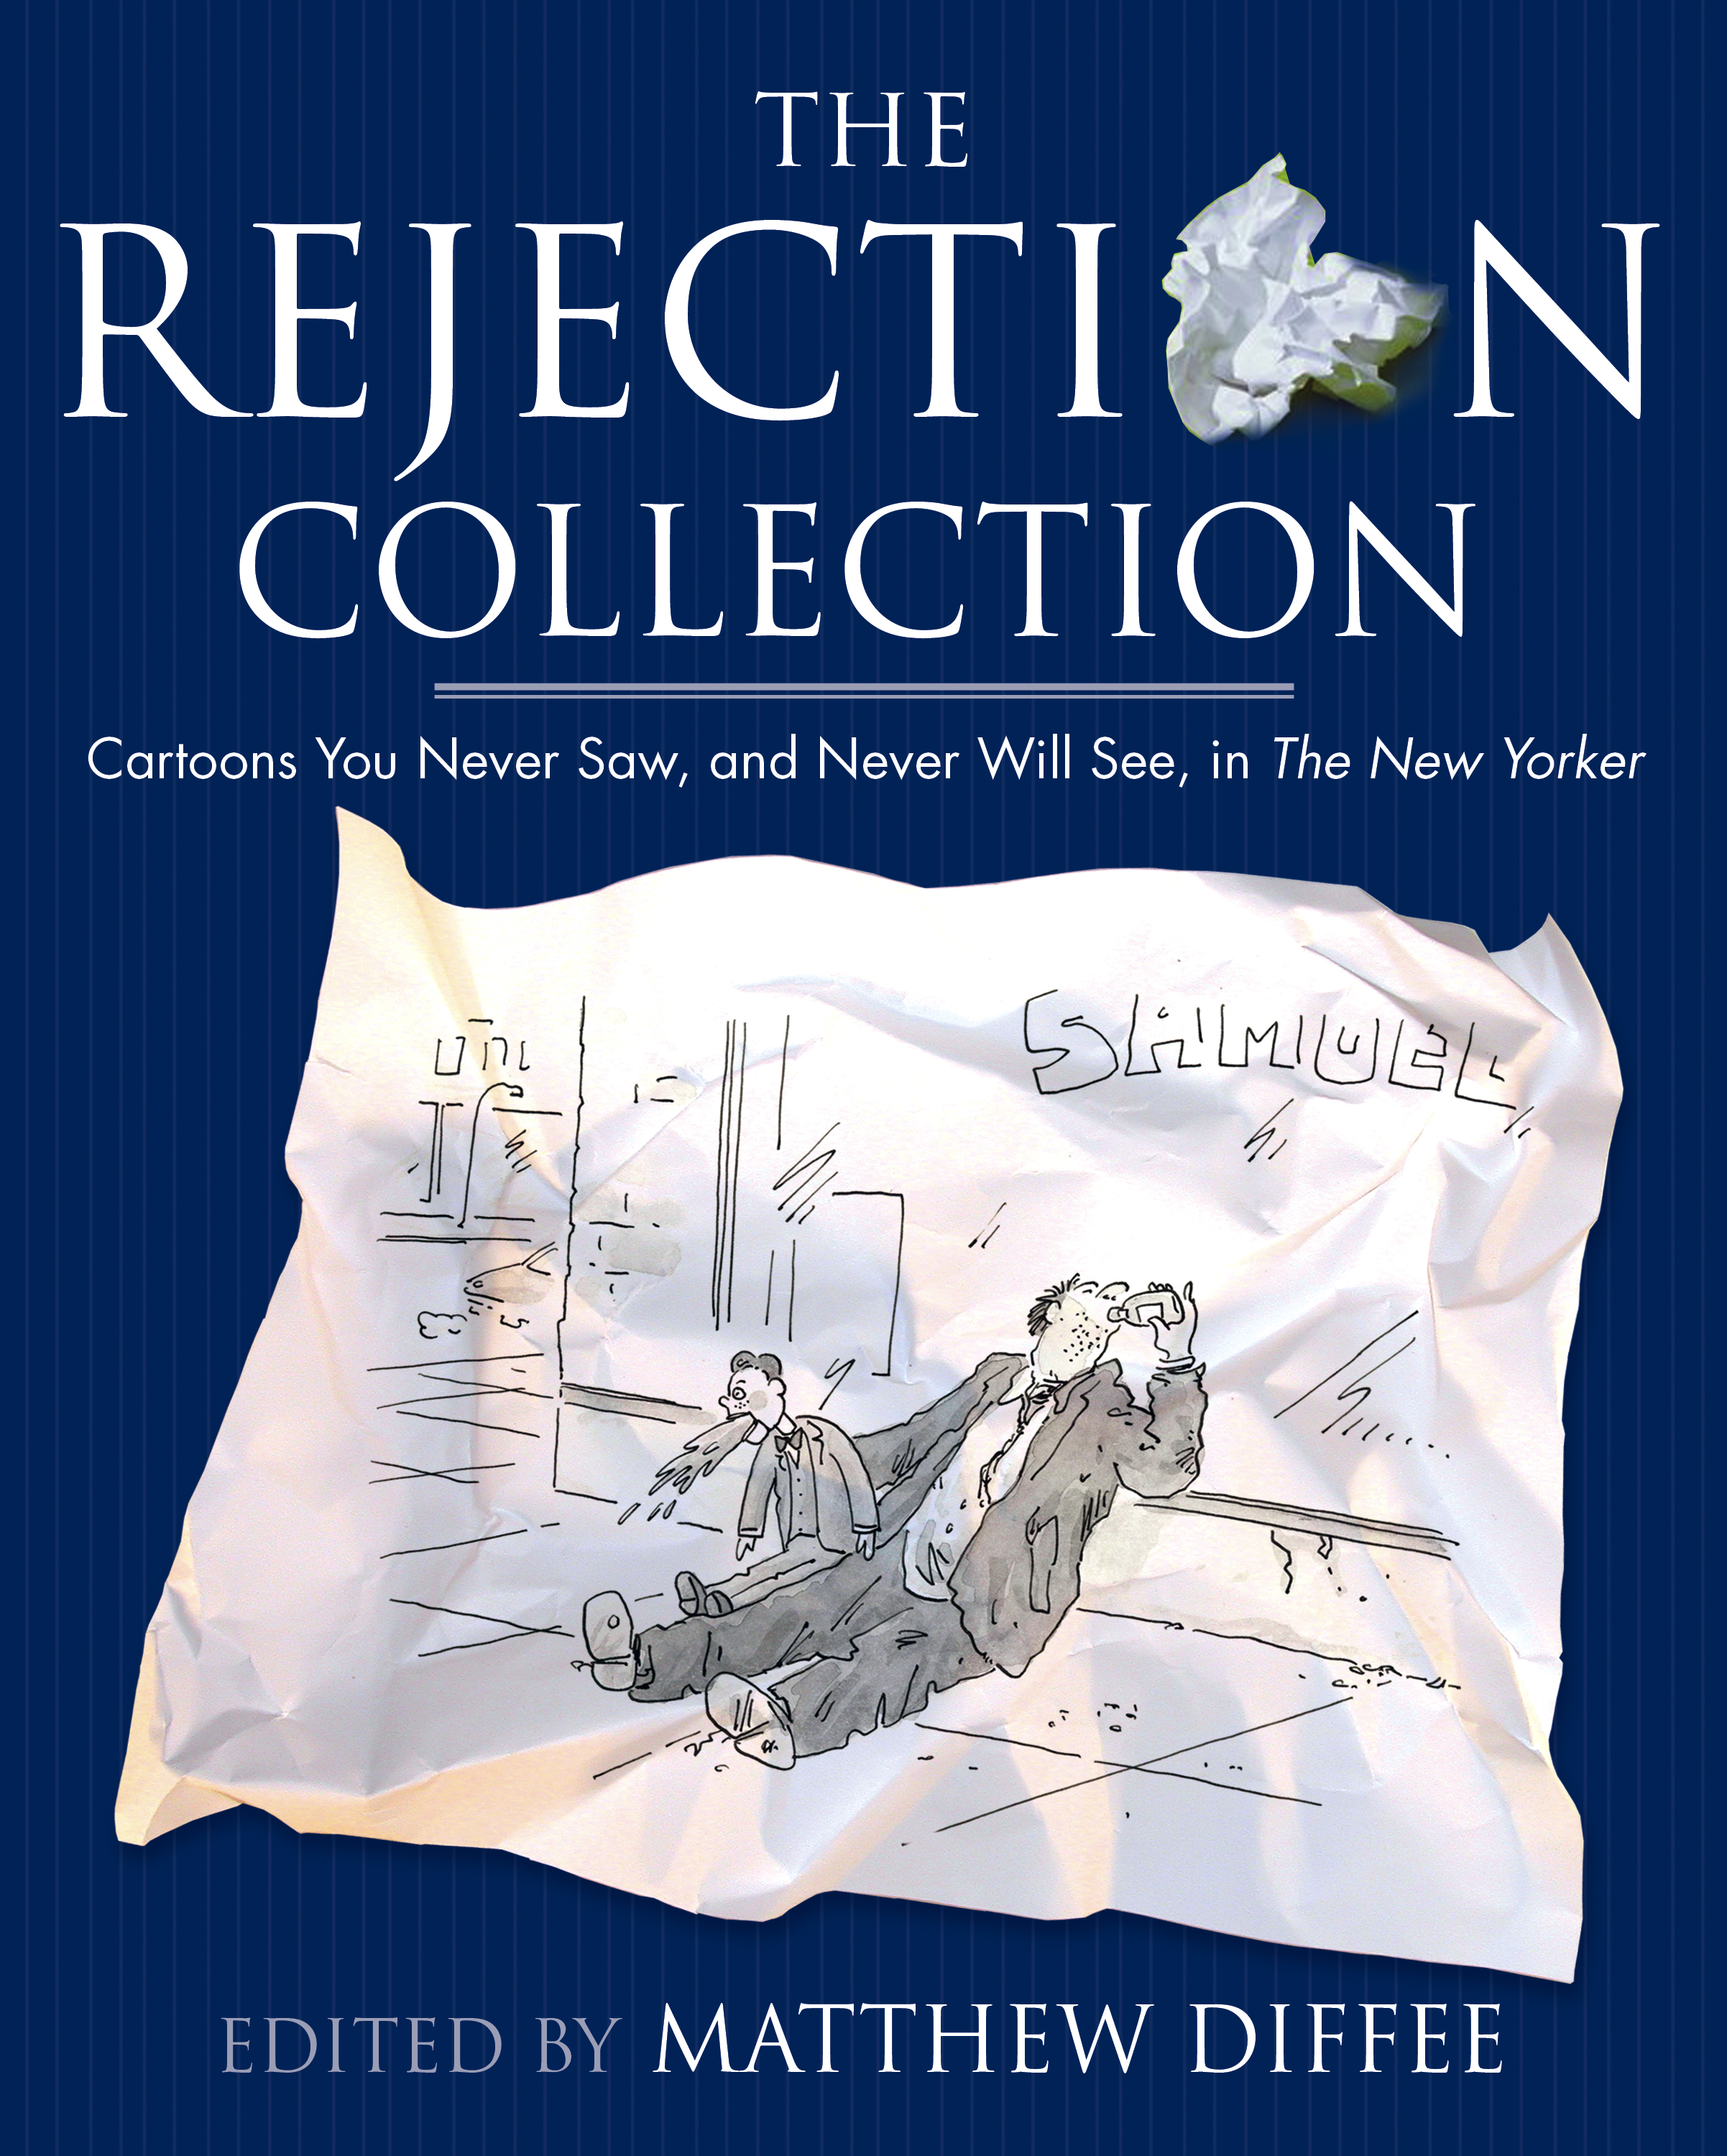 the rejection collection book by matthew diffee robert mankoff